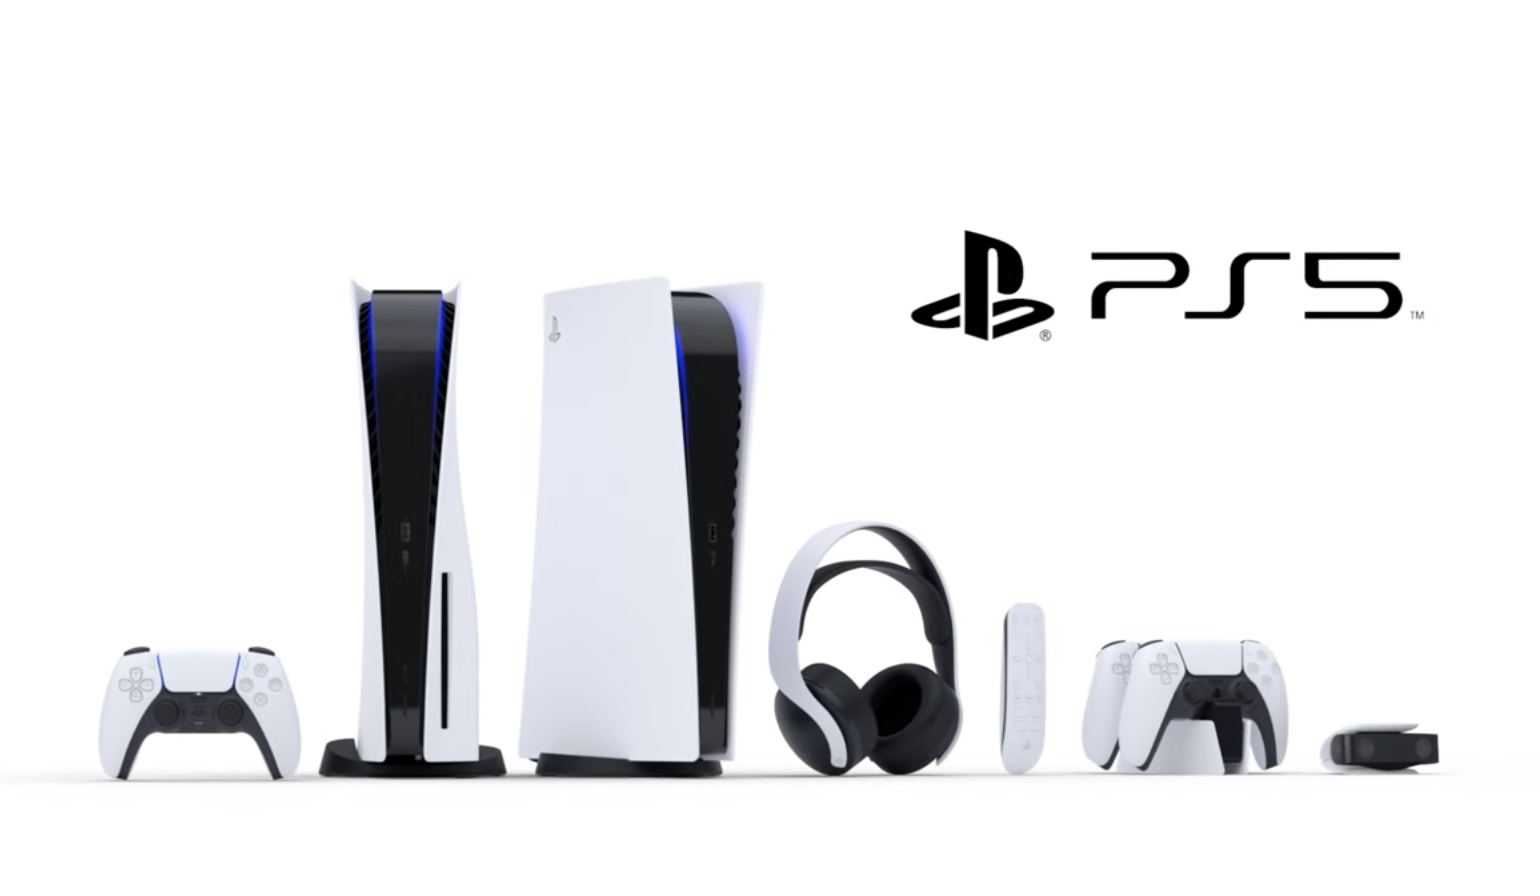 Kohl's Is Canceling PS5 Orders, Gamers Are BIG MAD